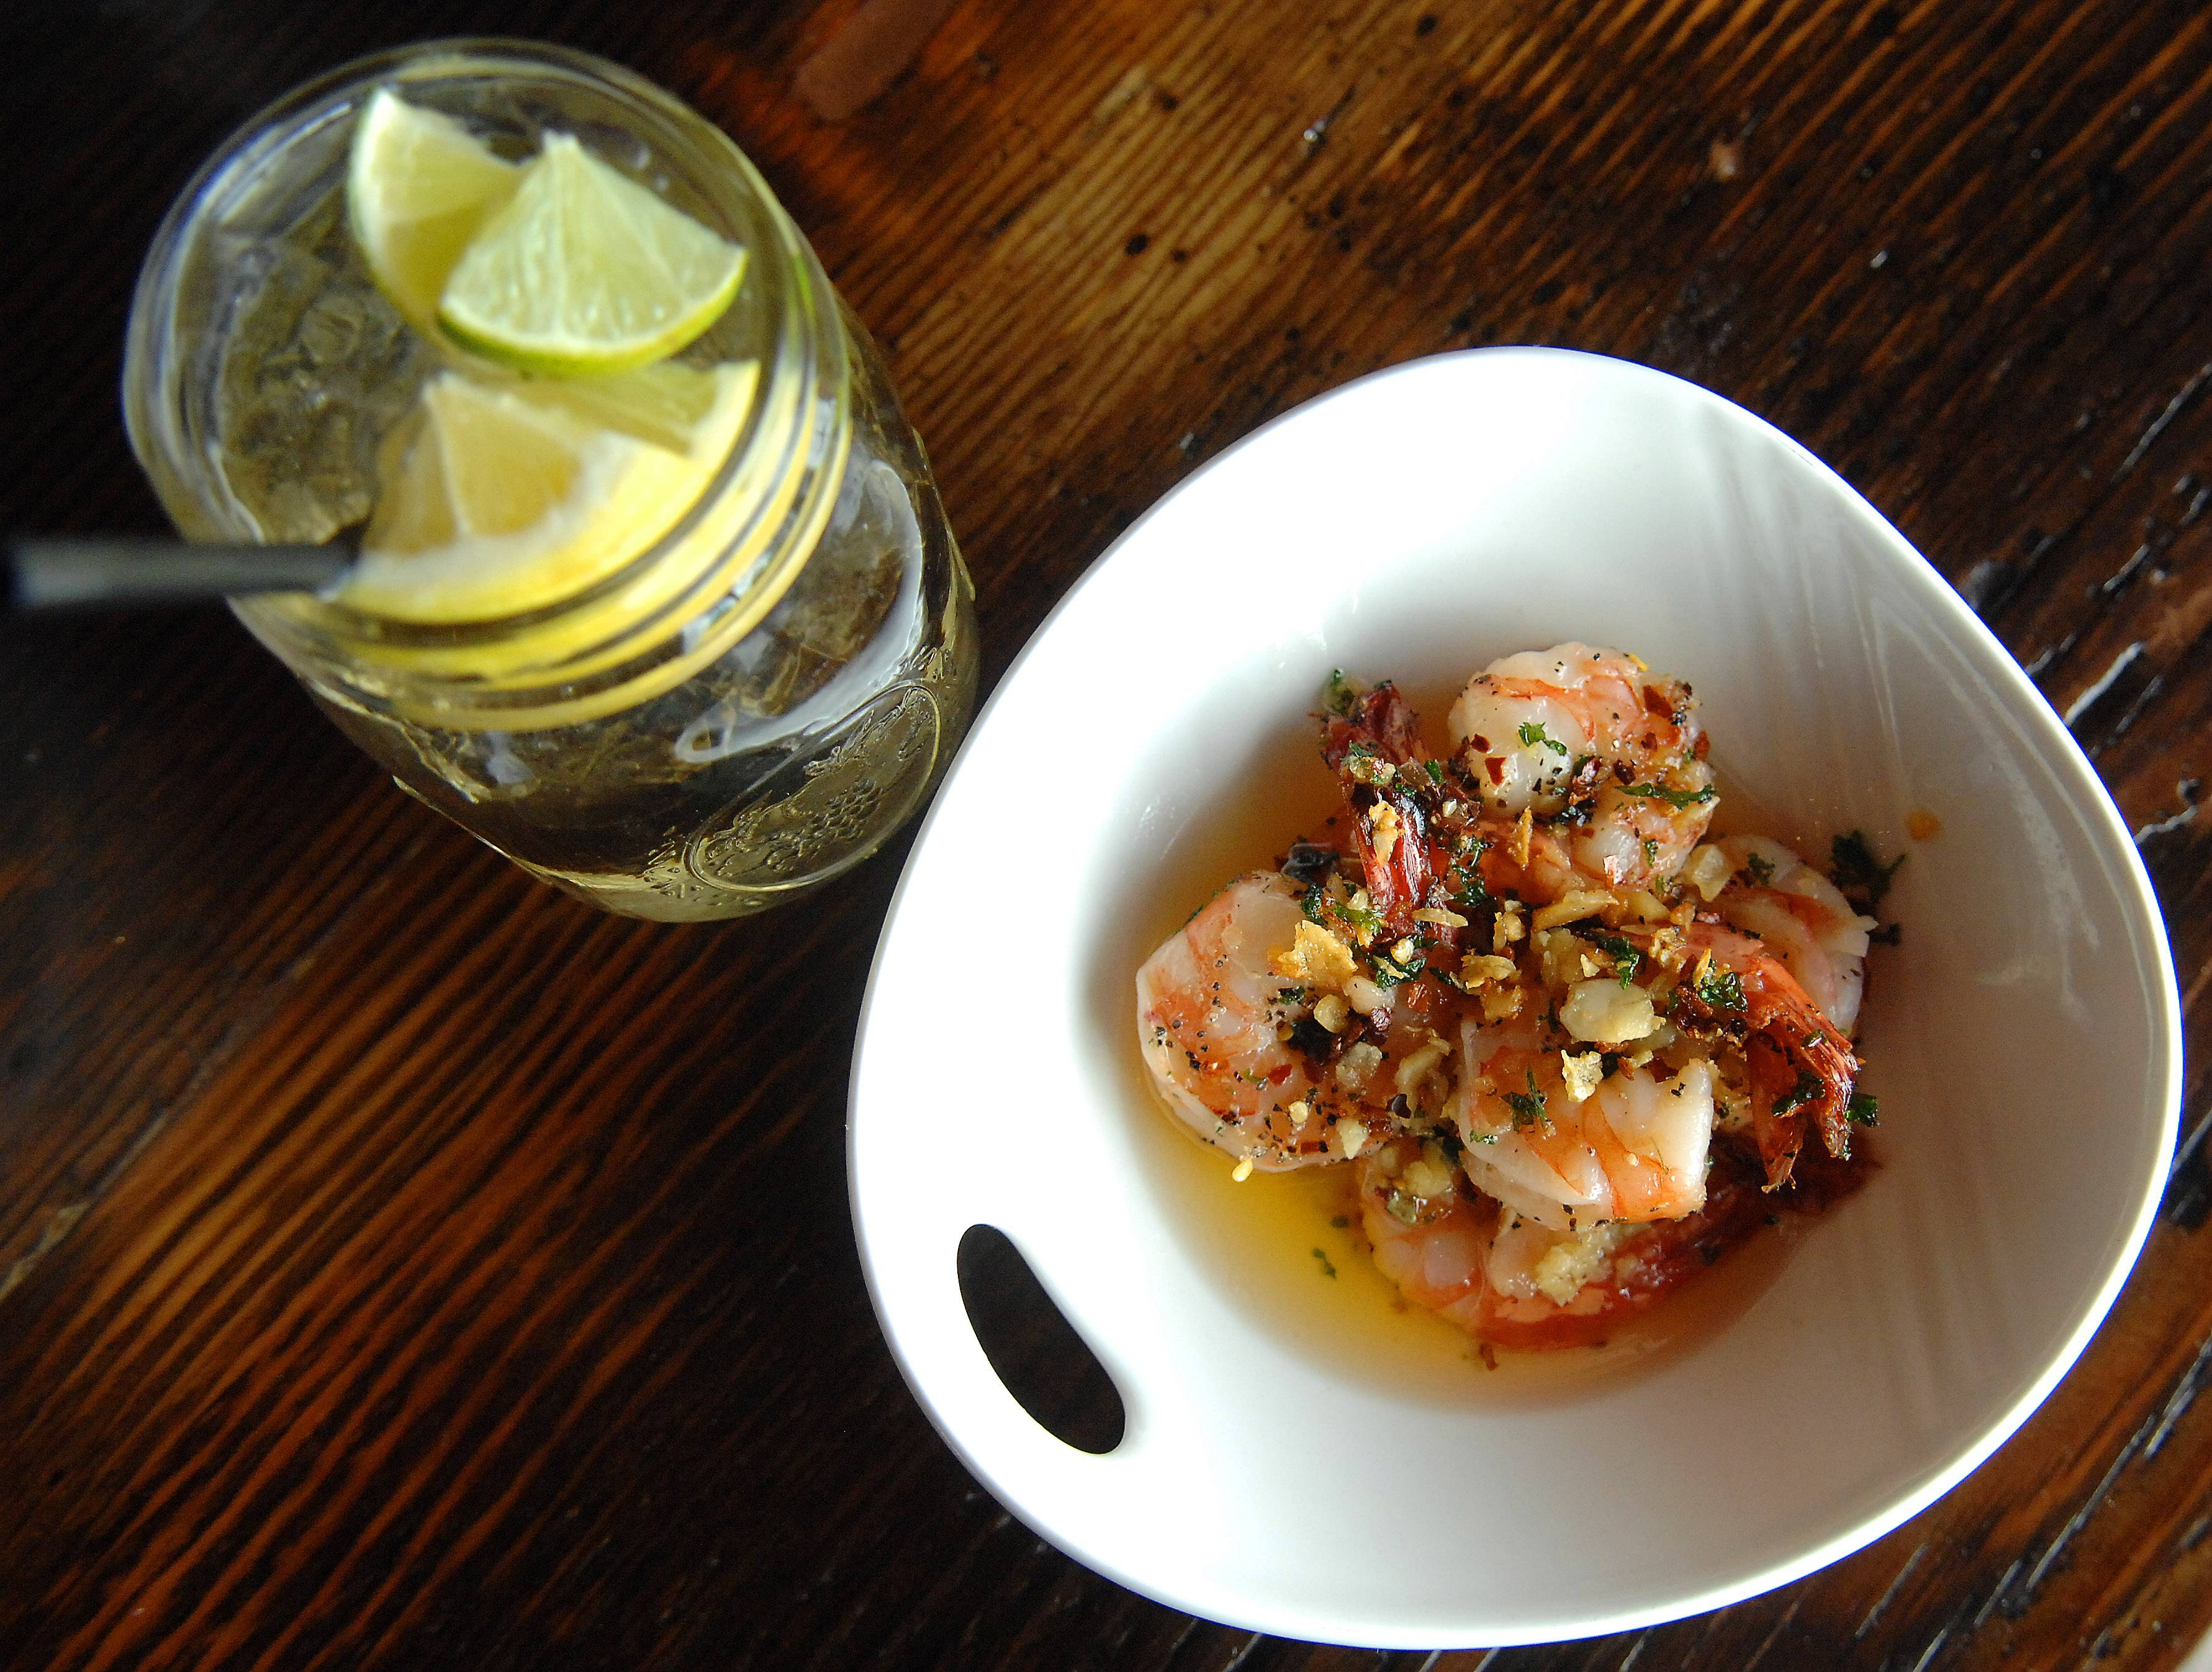 Gambas al Ajillo, or garlic shrimp, pairs well with white wine sangria at Macarena Tapas in St. Charles.